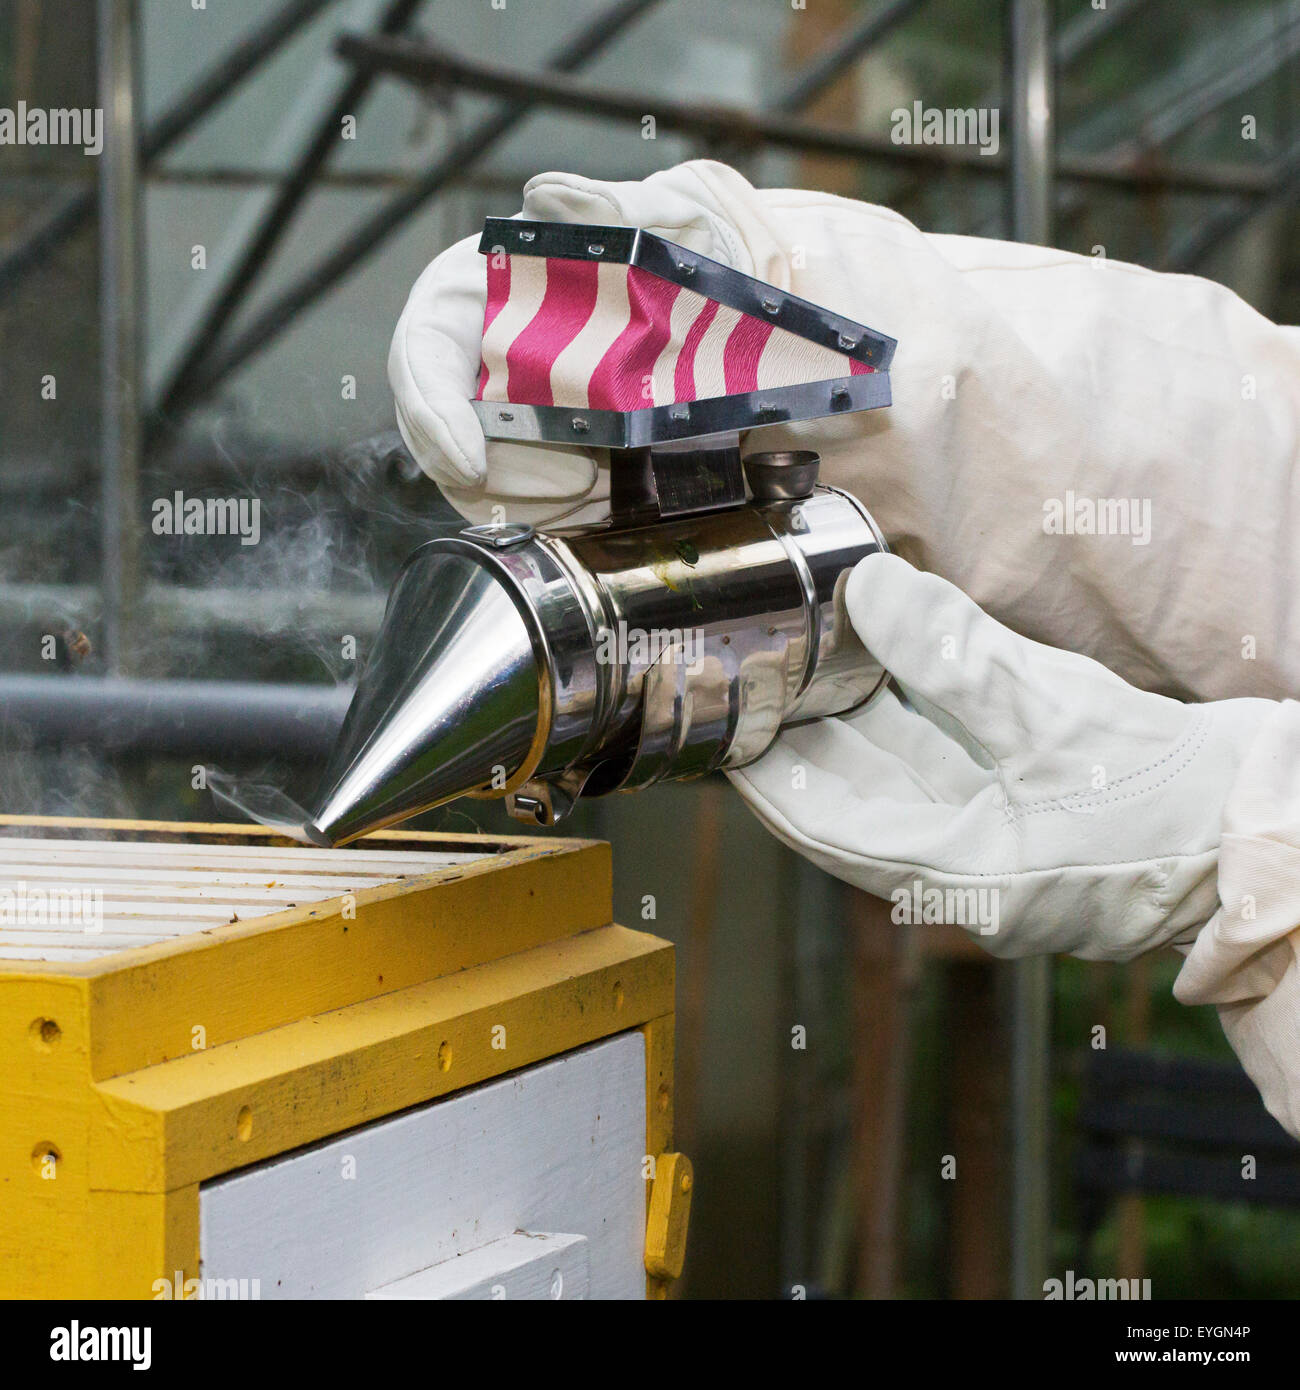 Beekeeper in protective clothing with bee smoker opens beehive to inspect combs from honey bees (Apis mellifera) - Stock Image